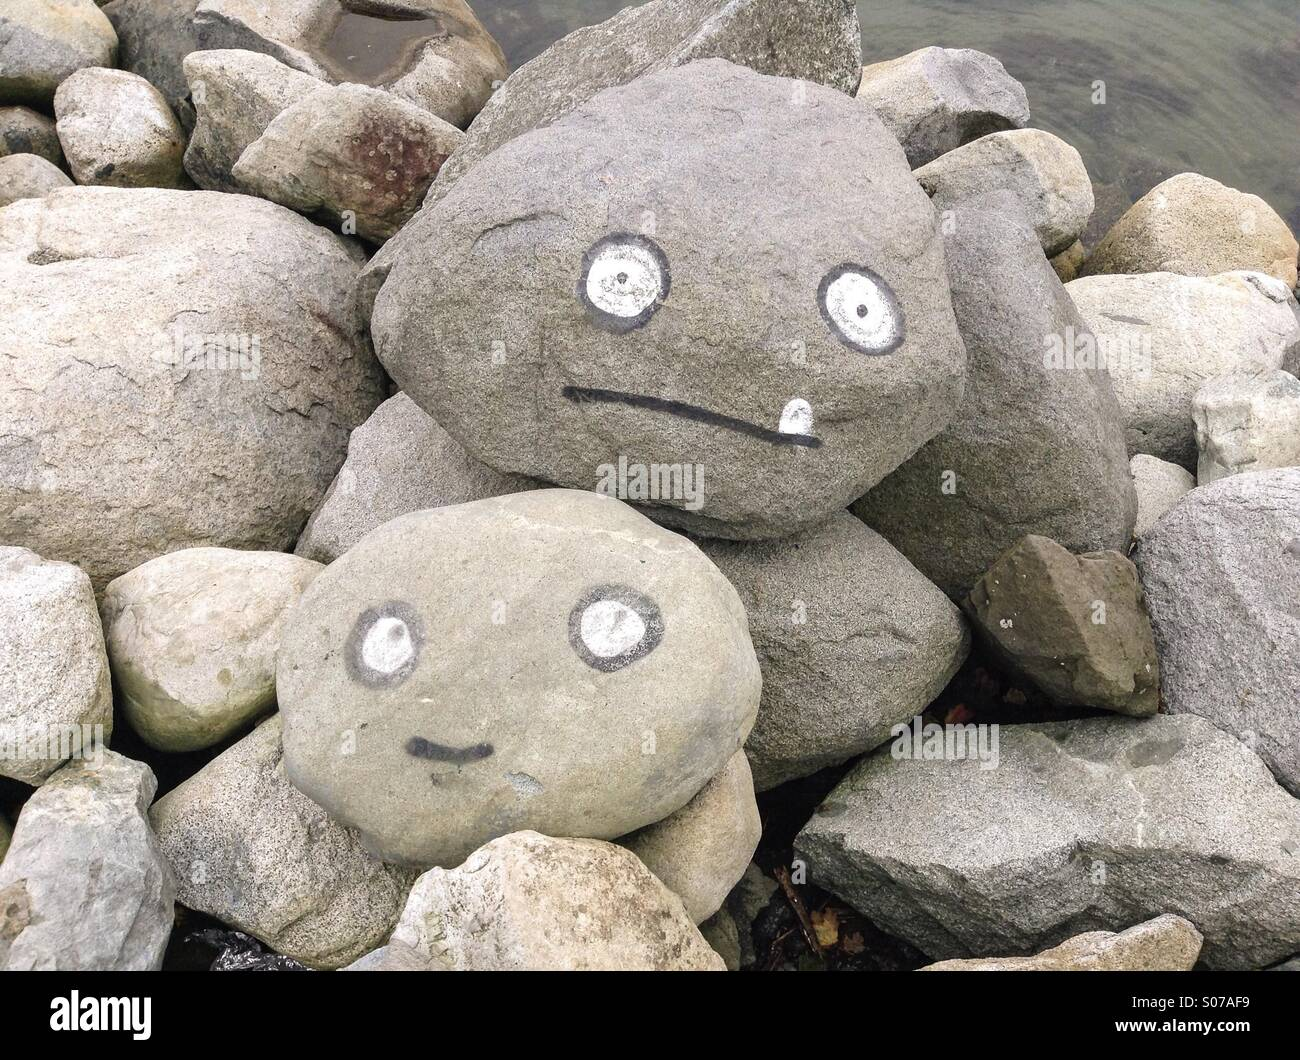 Stoned faces, rocks with painted faces - Stock Image